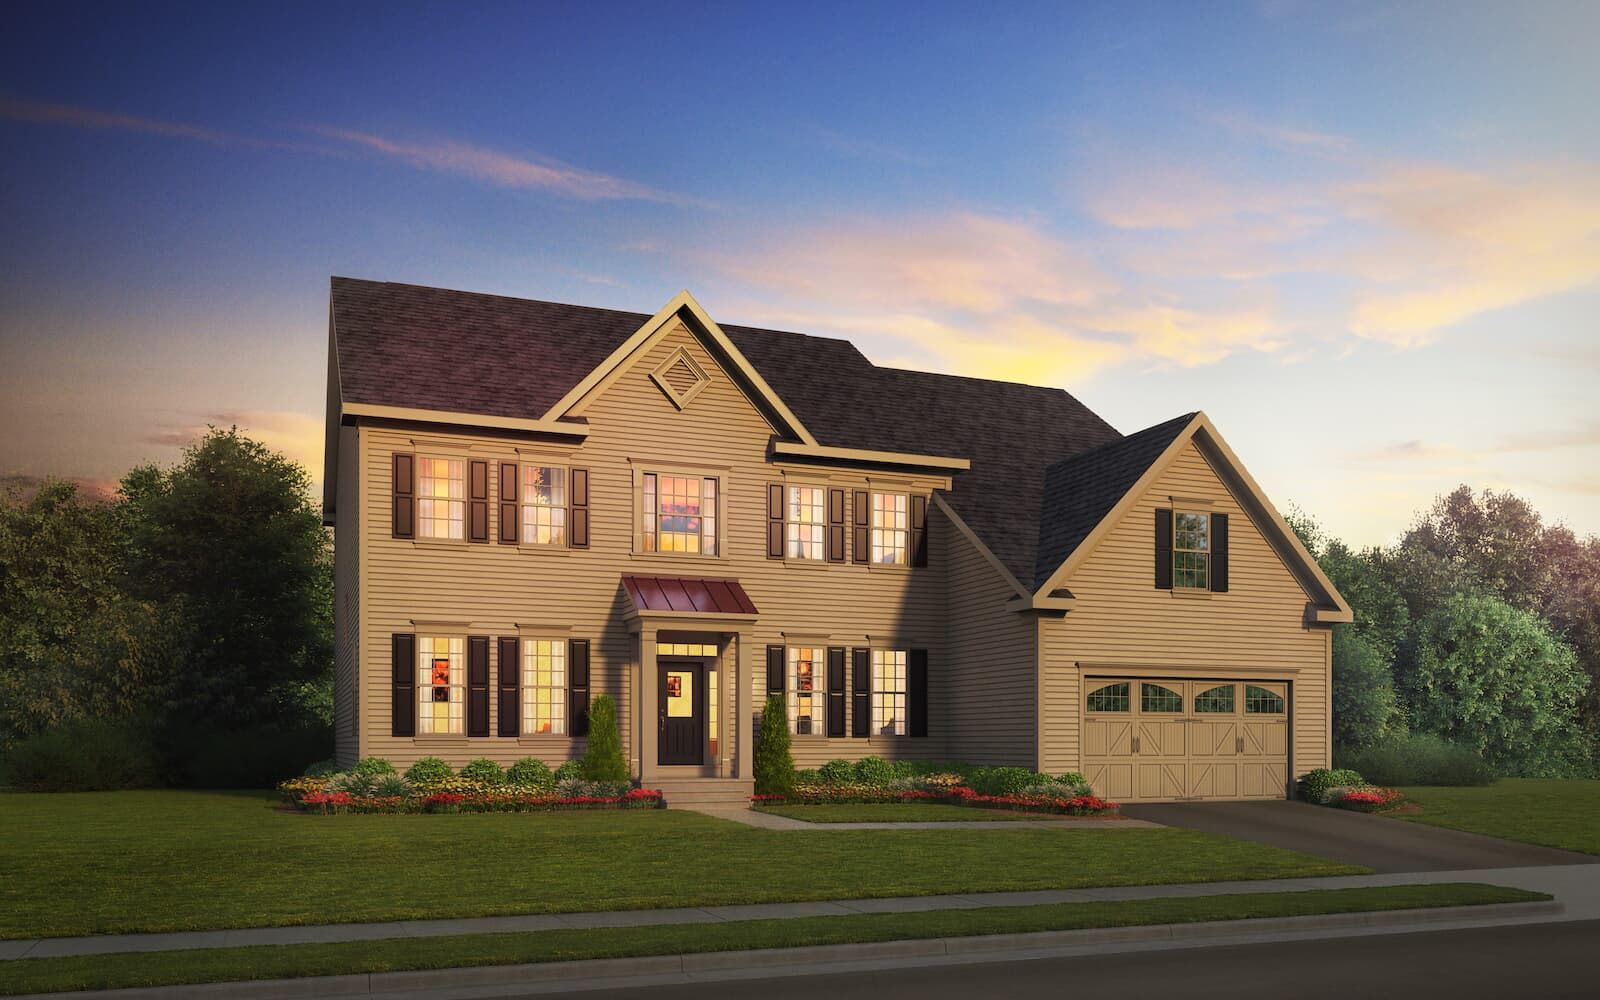 Exterior:Elevation 1 of the Hadleigh a home design by Brookfield Residential at Waterford Manor